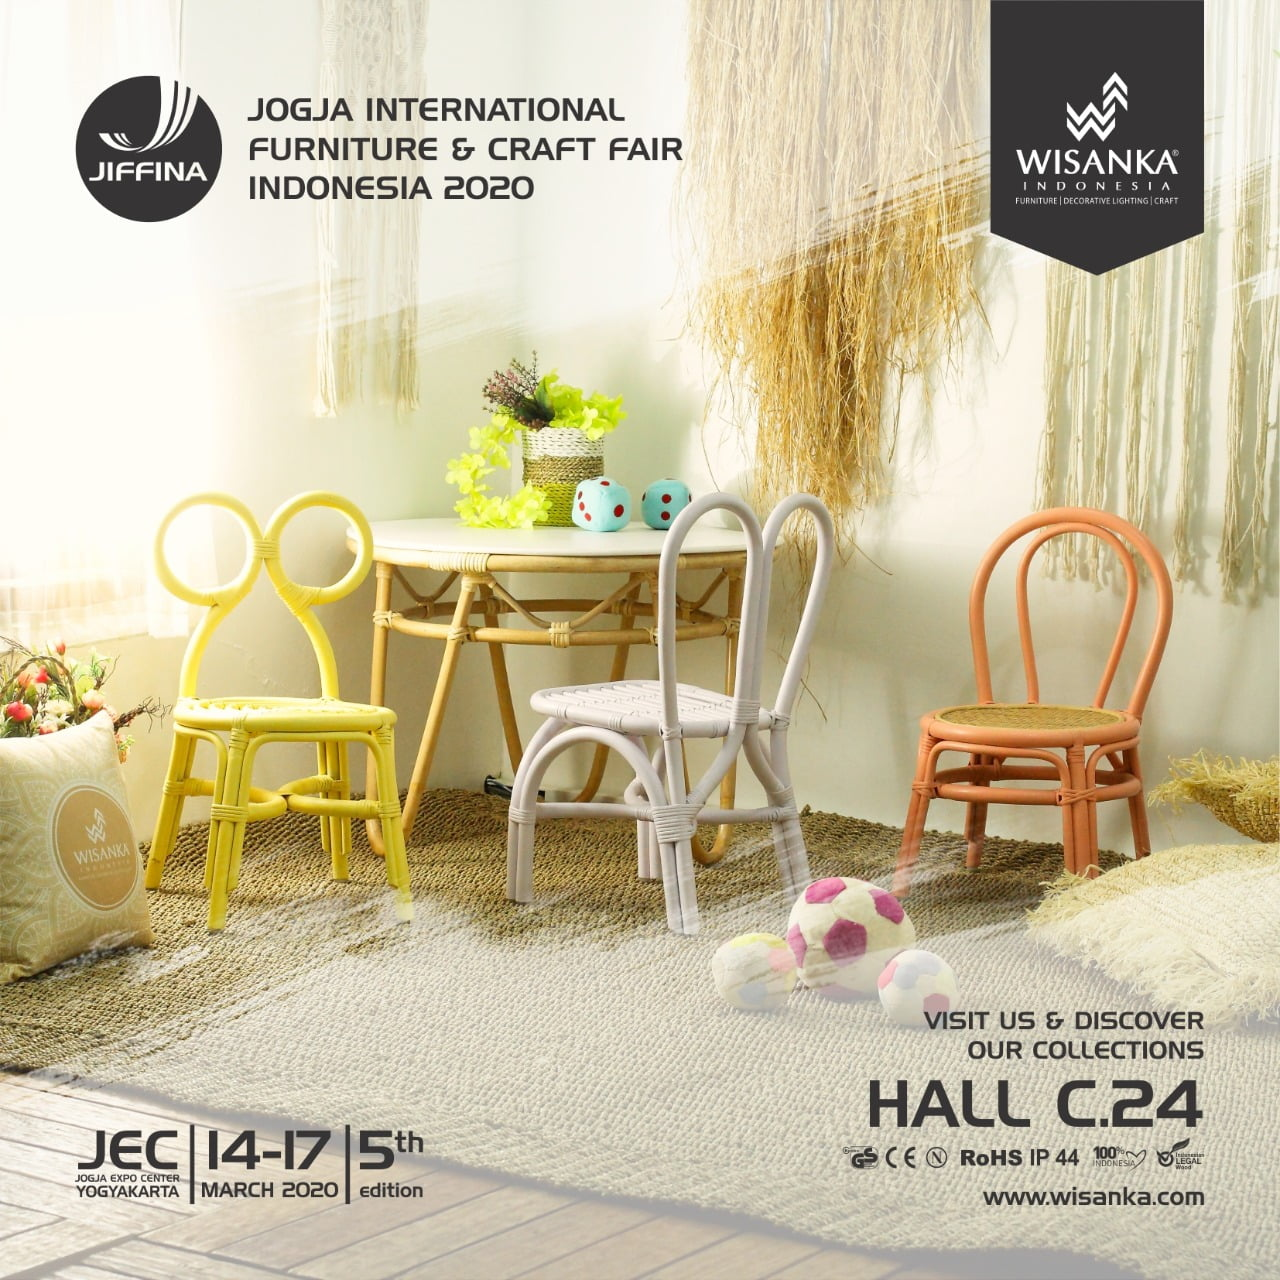 Jiffina 2020 Jogja International Furniture And Craft Fair Indonesia